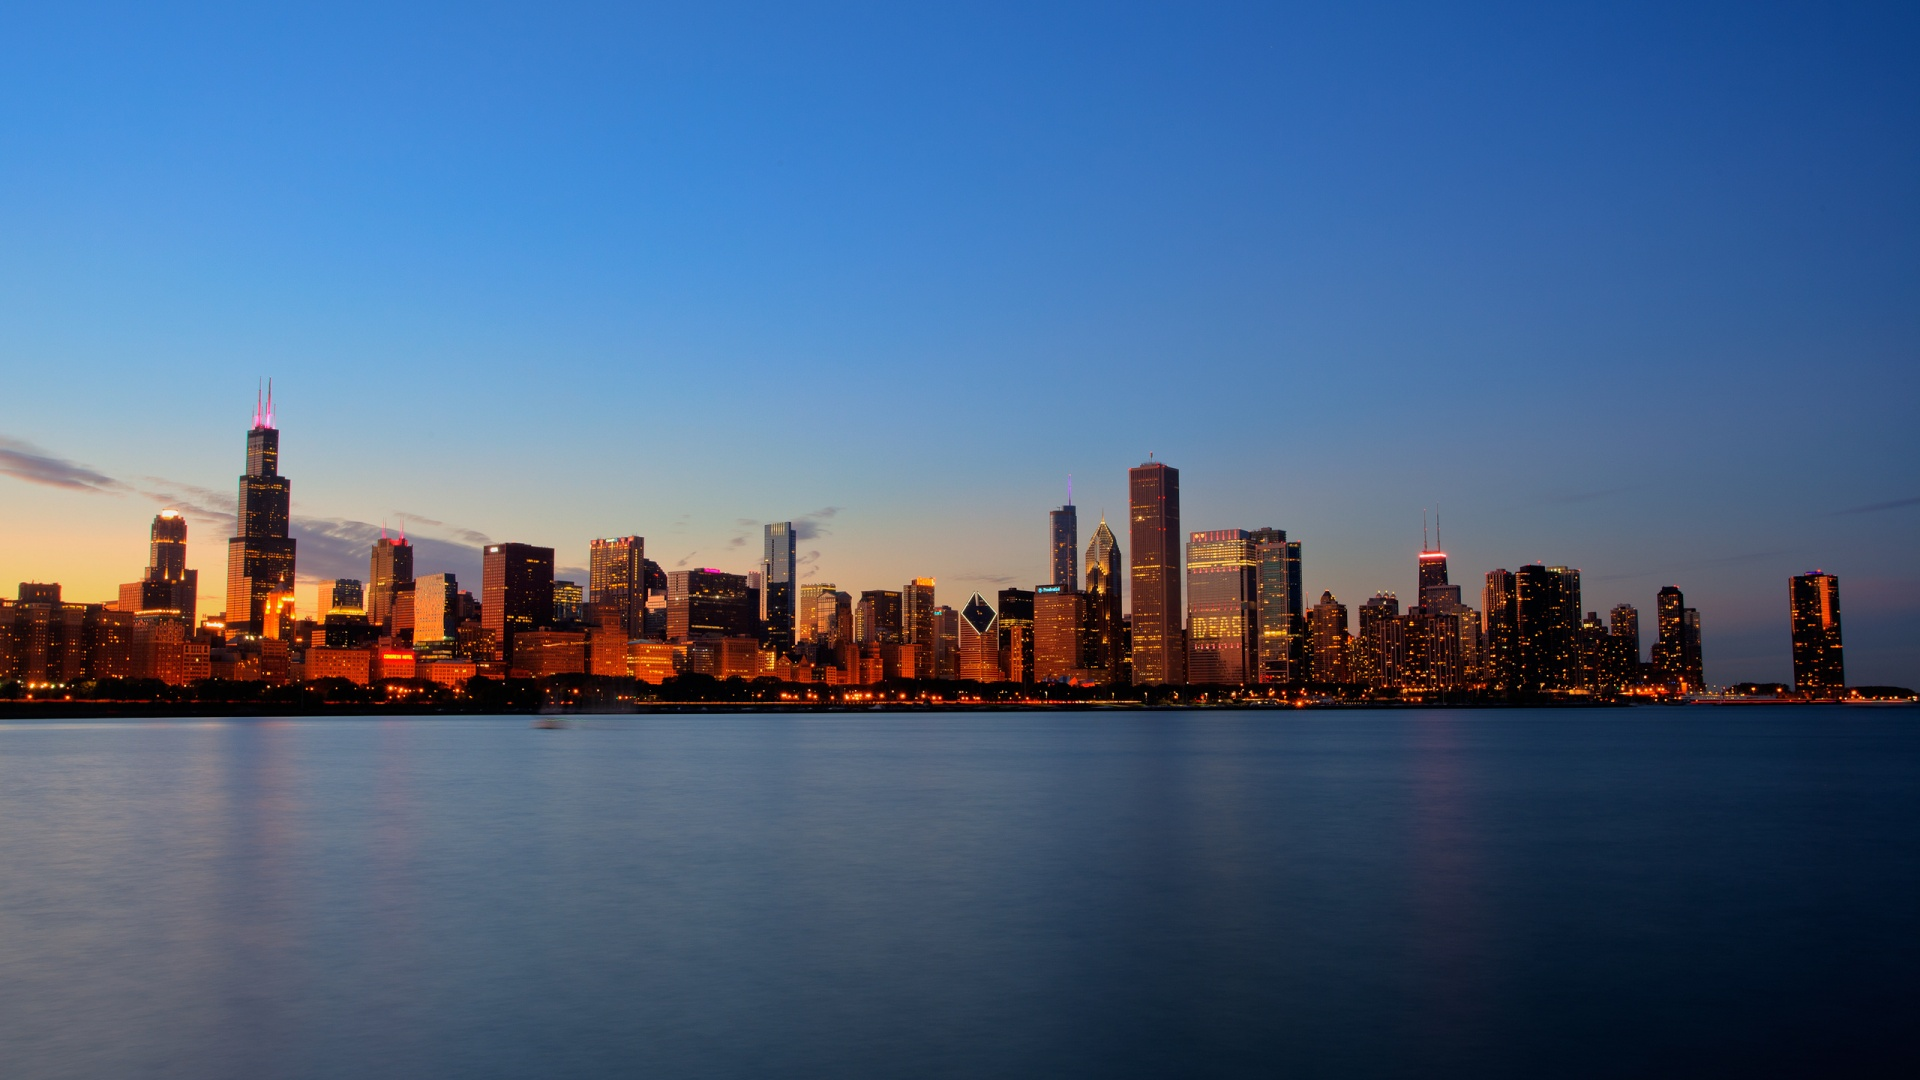 Sunset On A Chicago Skyline wallpaper